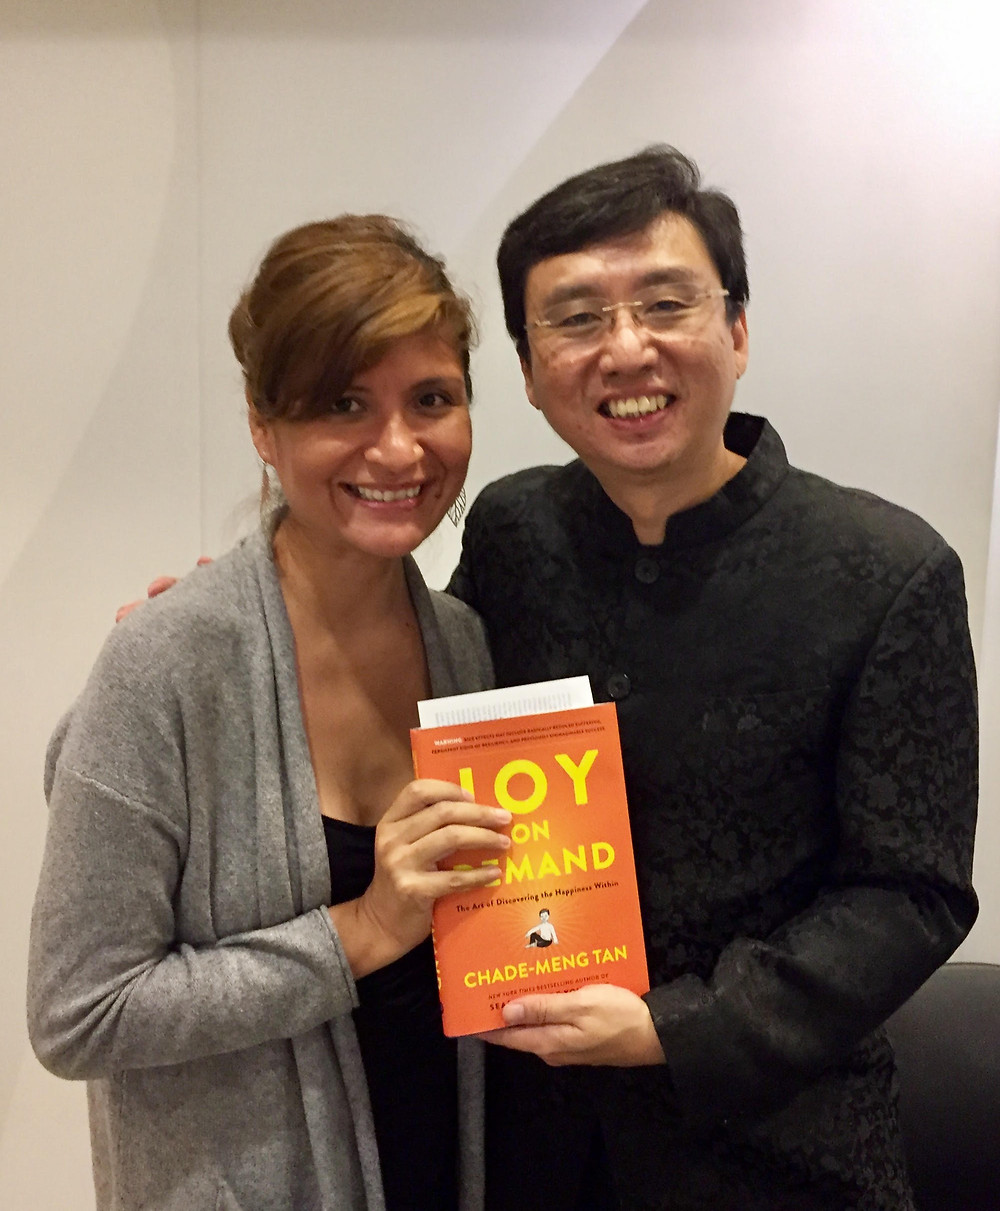 with Chade Meng Tan, founder of the Search Inside Yourself Institute, best selling author.